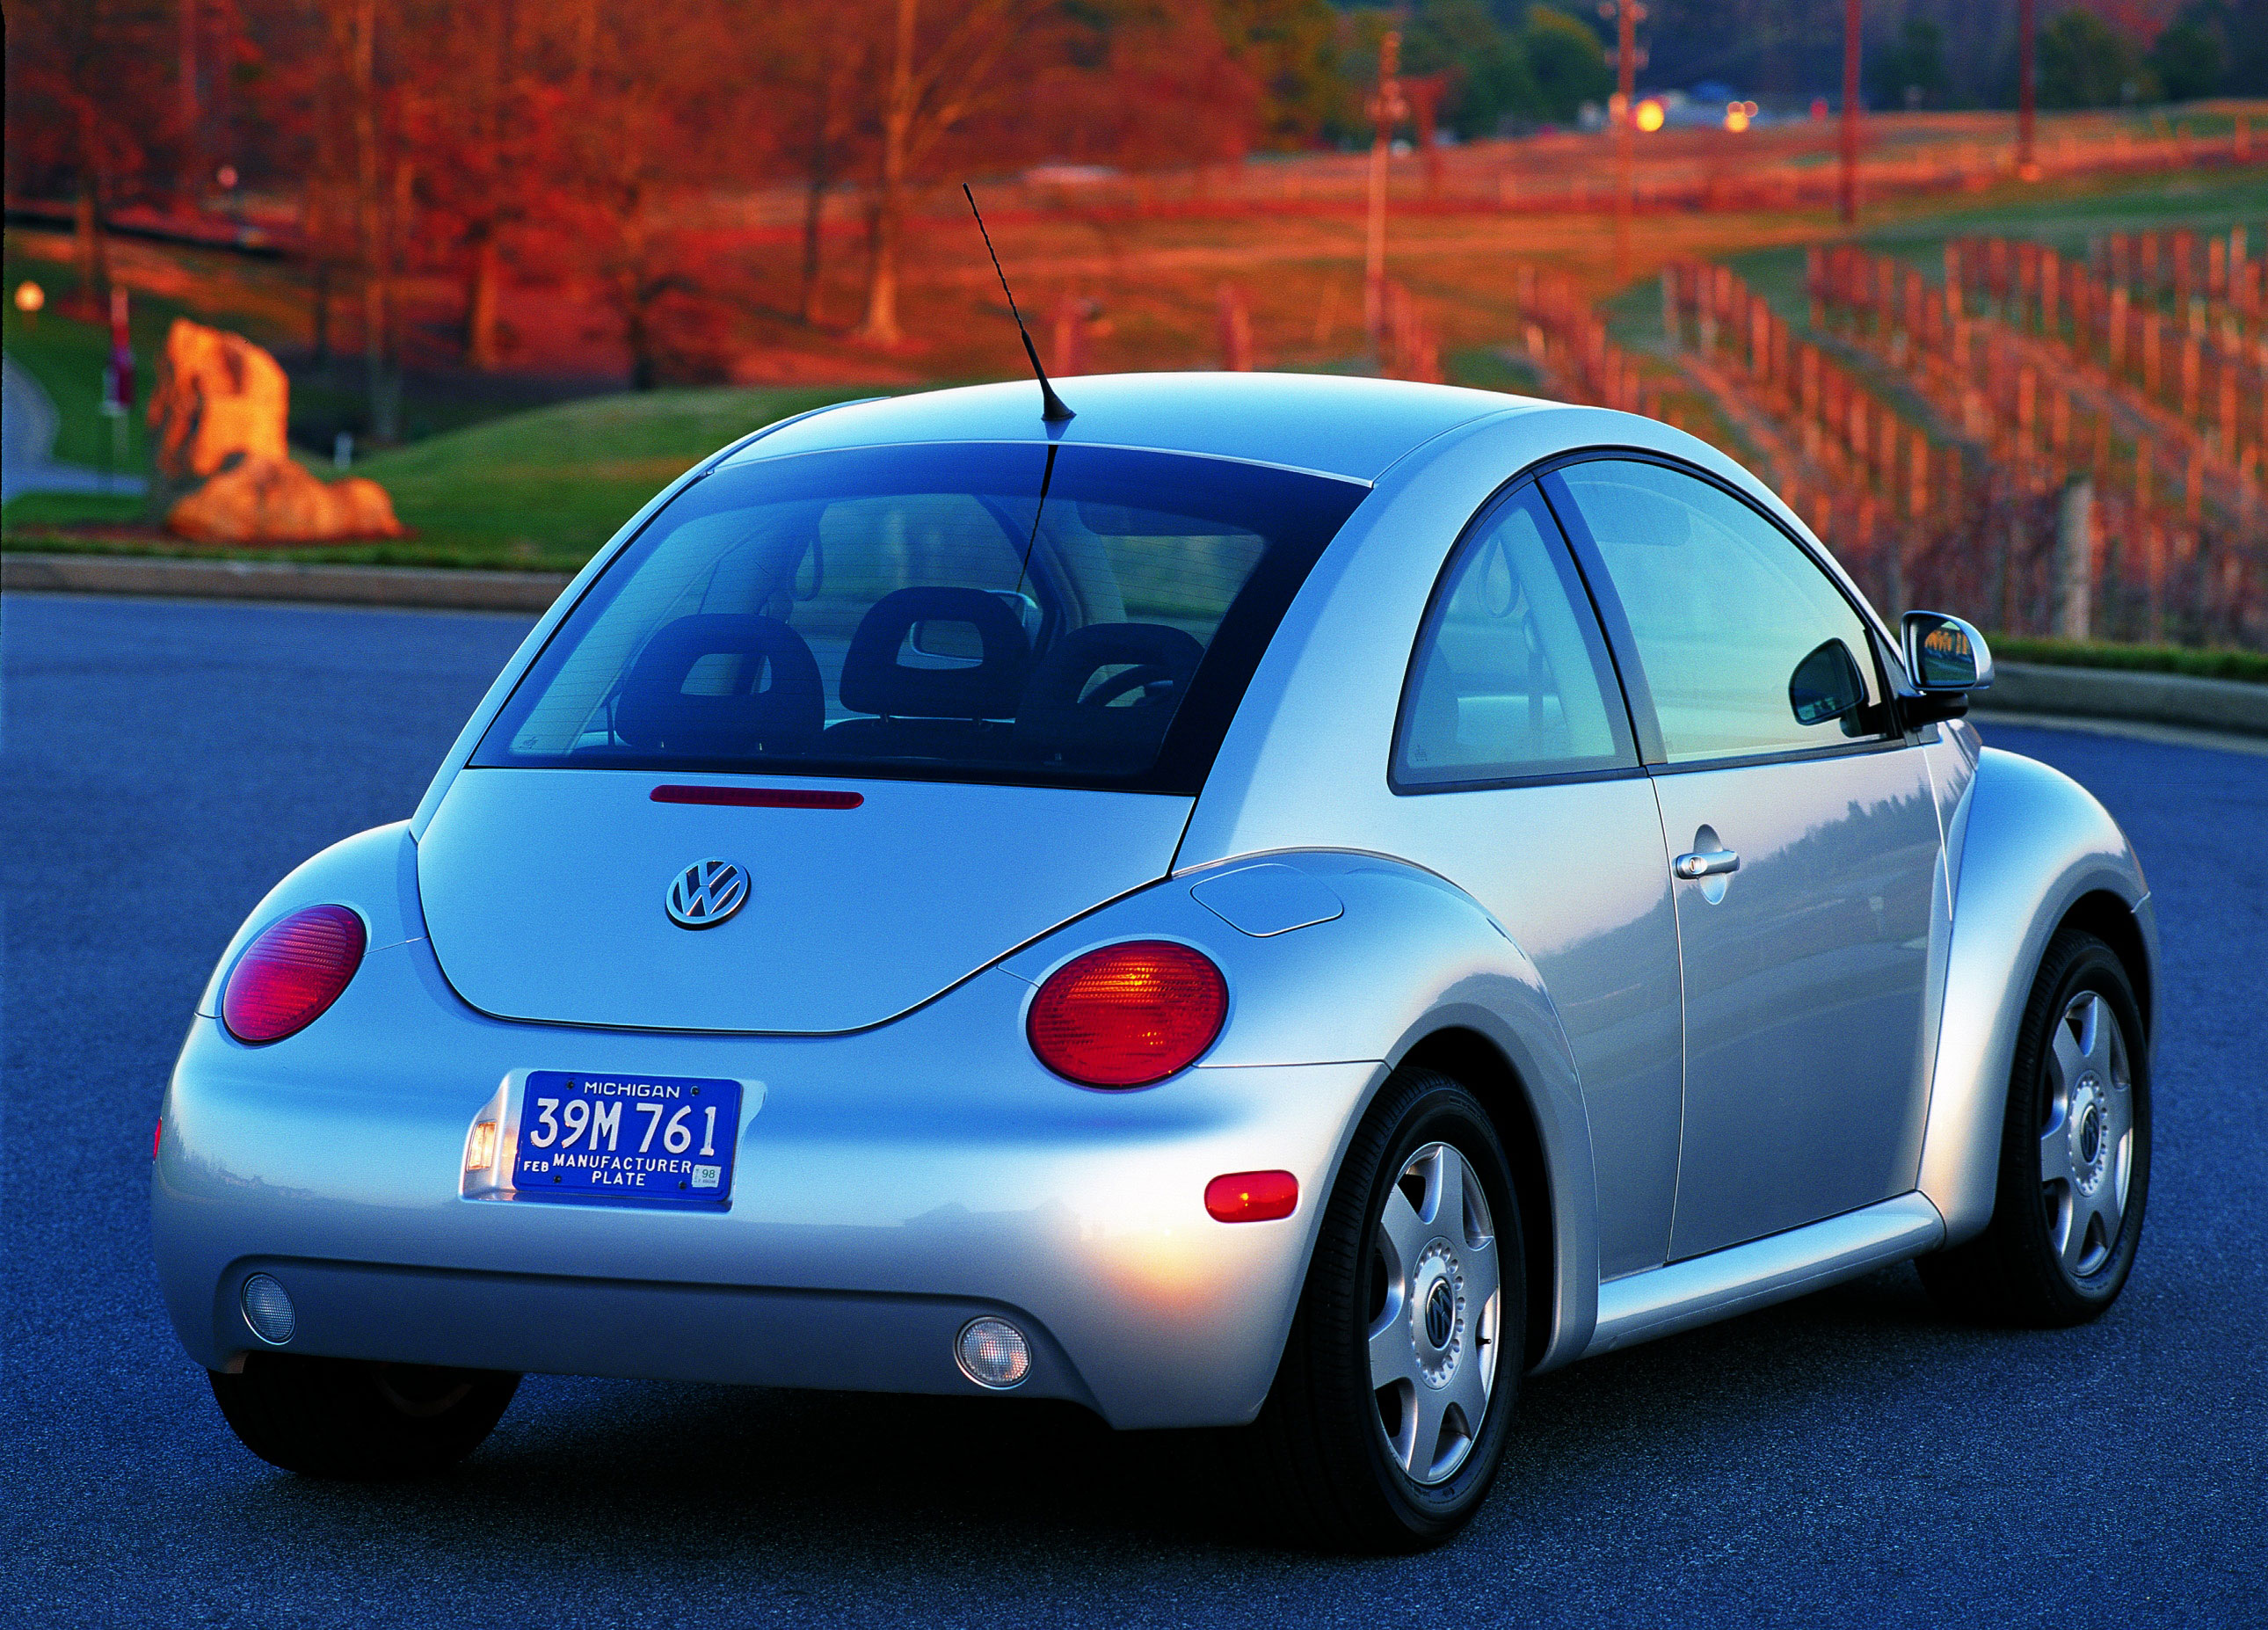 1998 Volkswagen Beetle rear 3/4